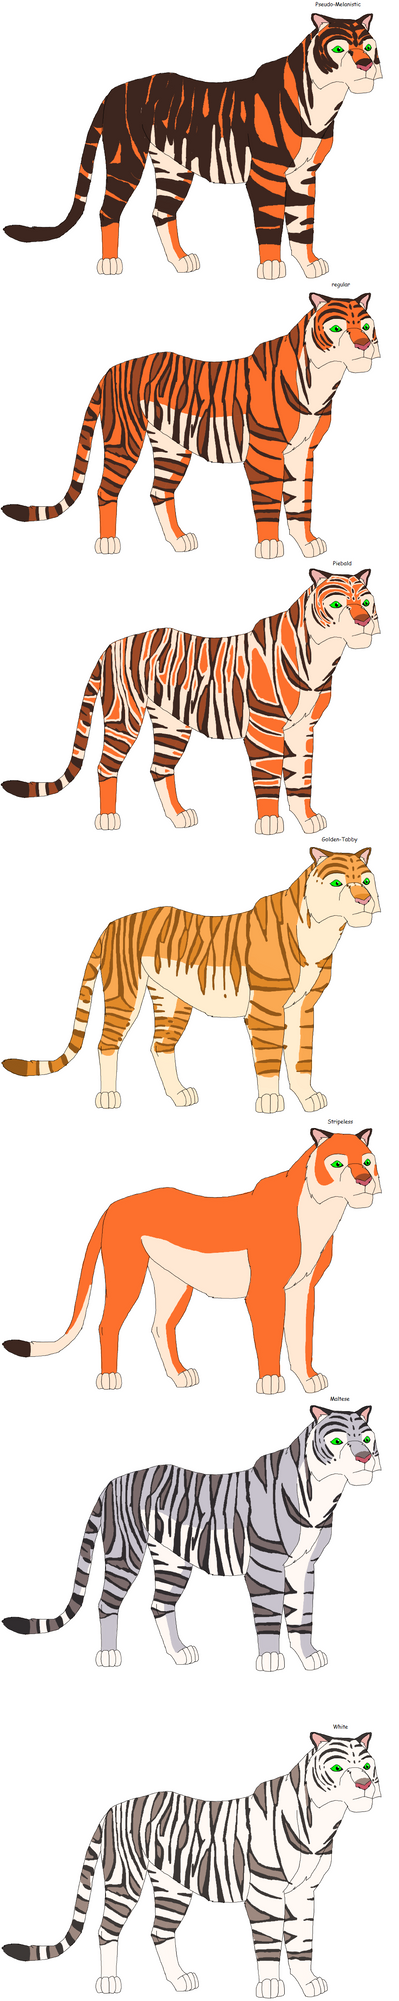 Tiger by Patchi1995